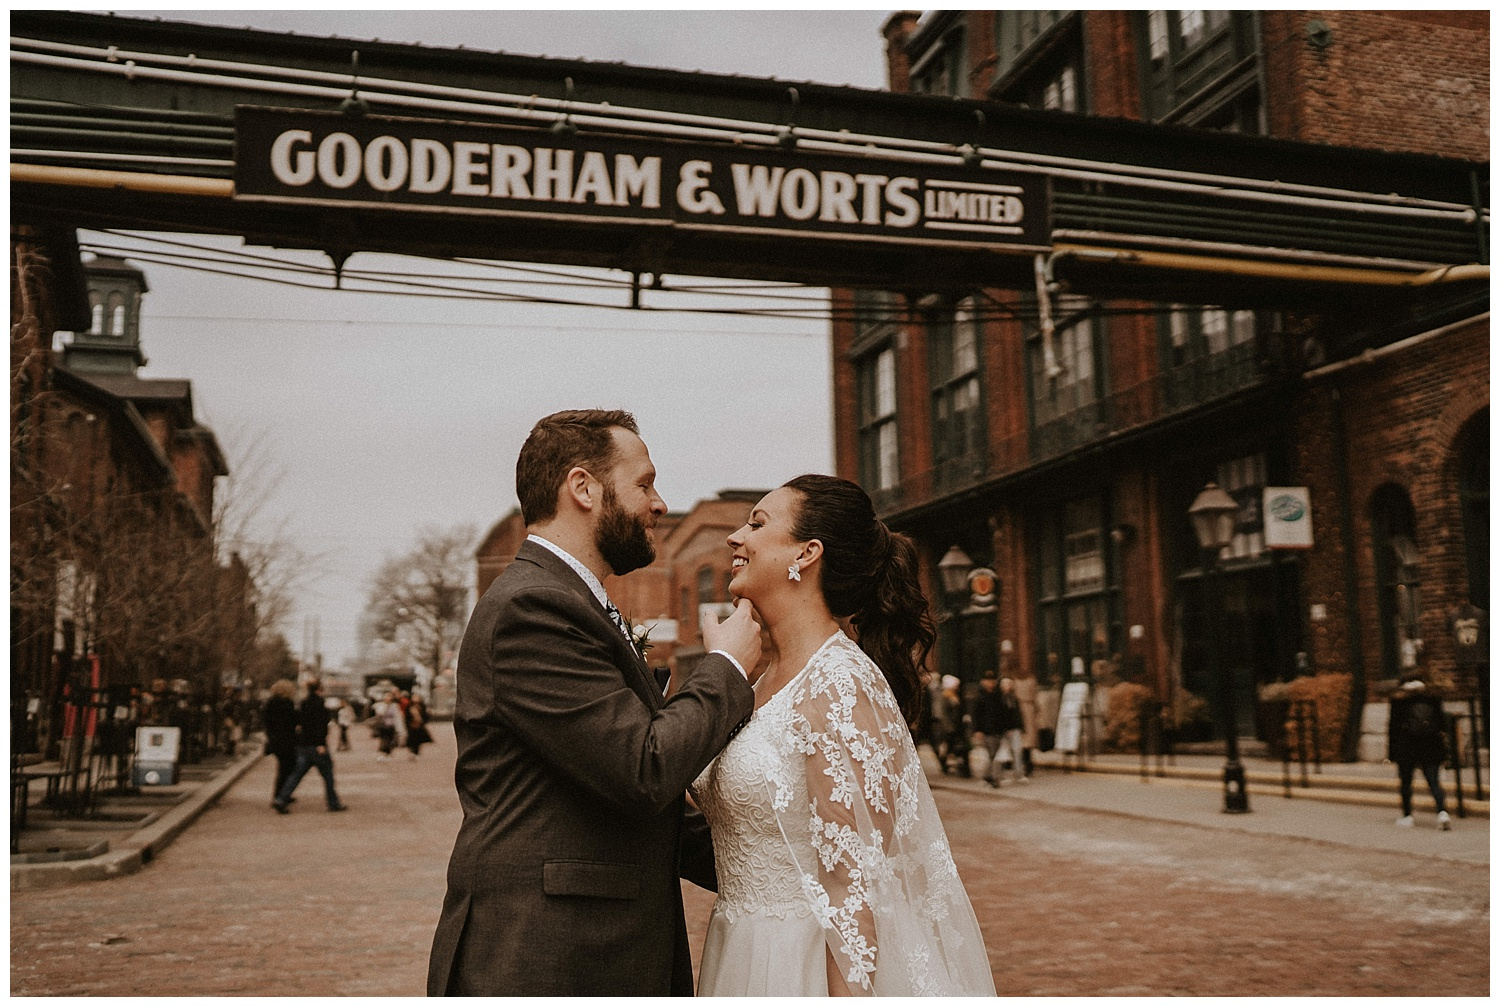 Katie Marie Photography | Archeo Wedding Arta Gallery Wedding | Distillery District Wedding | Toronto Wedding Photographer | Hamilton Toronto Ontario Wedding Photographer |_0017.jpg